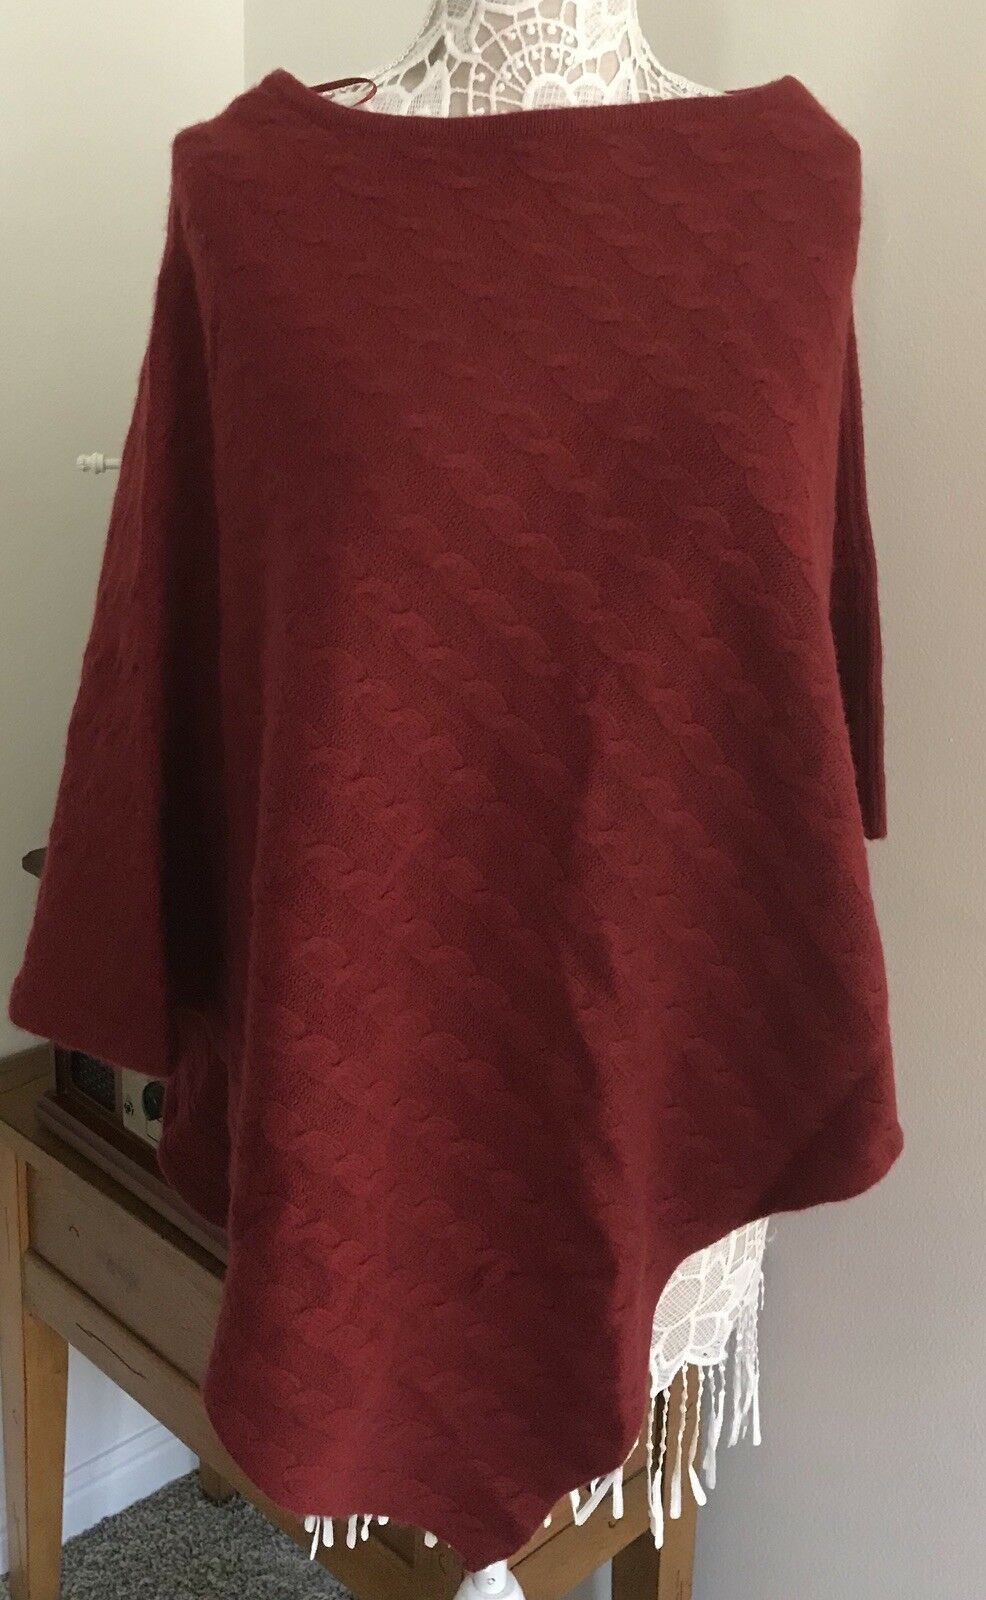 NWT Dillards 100% Luxury Cashmere Deep Cherry Red Cable Knit Poncho One Size